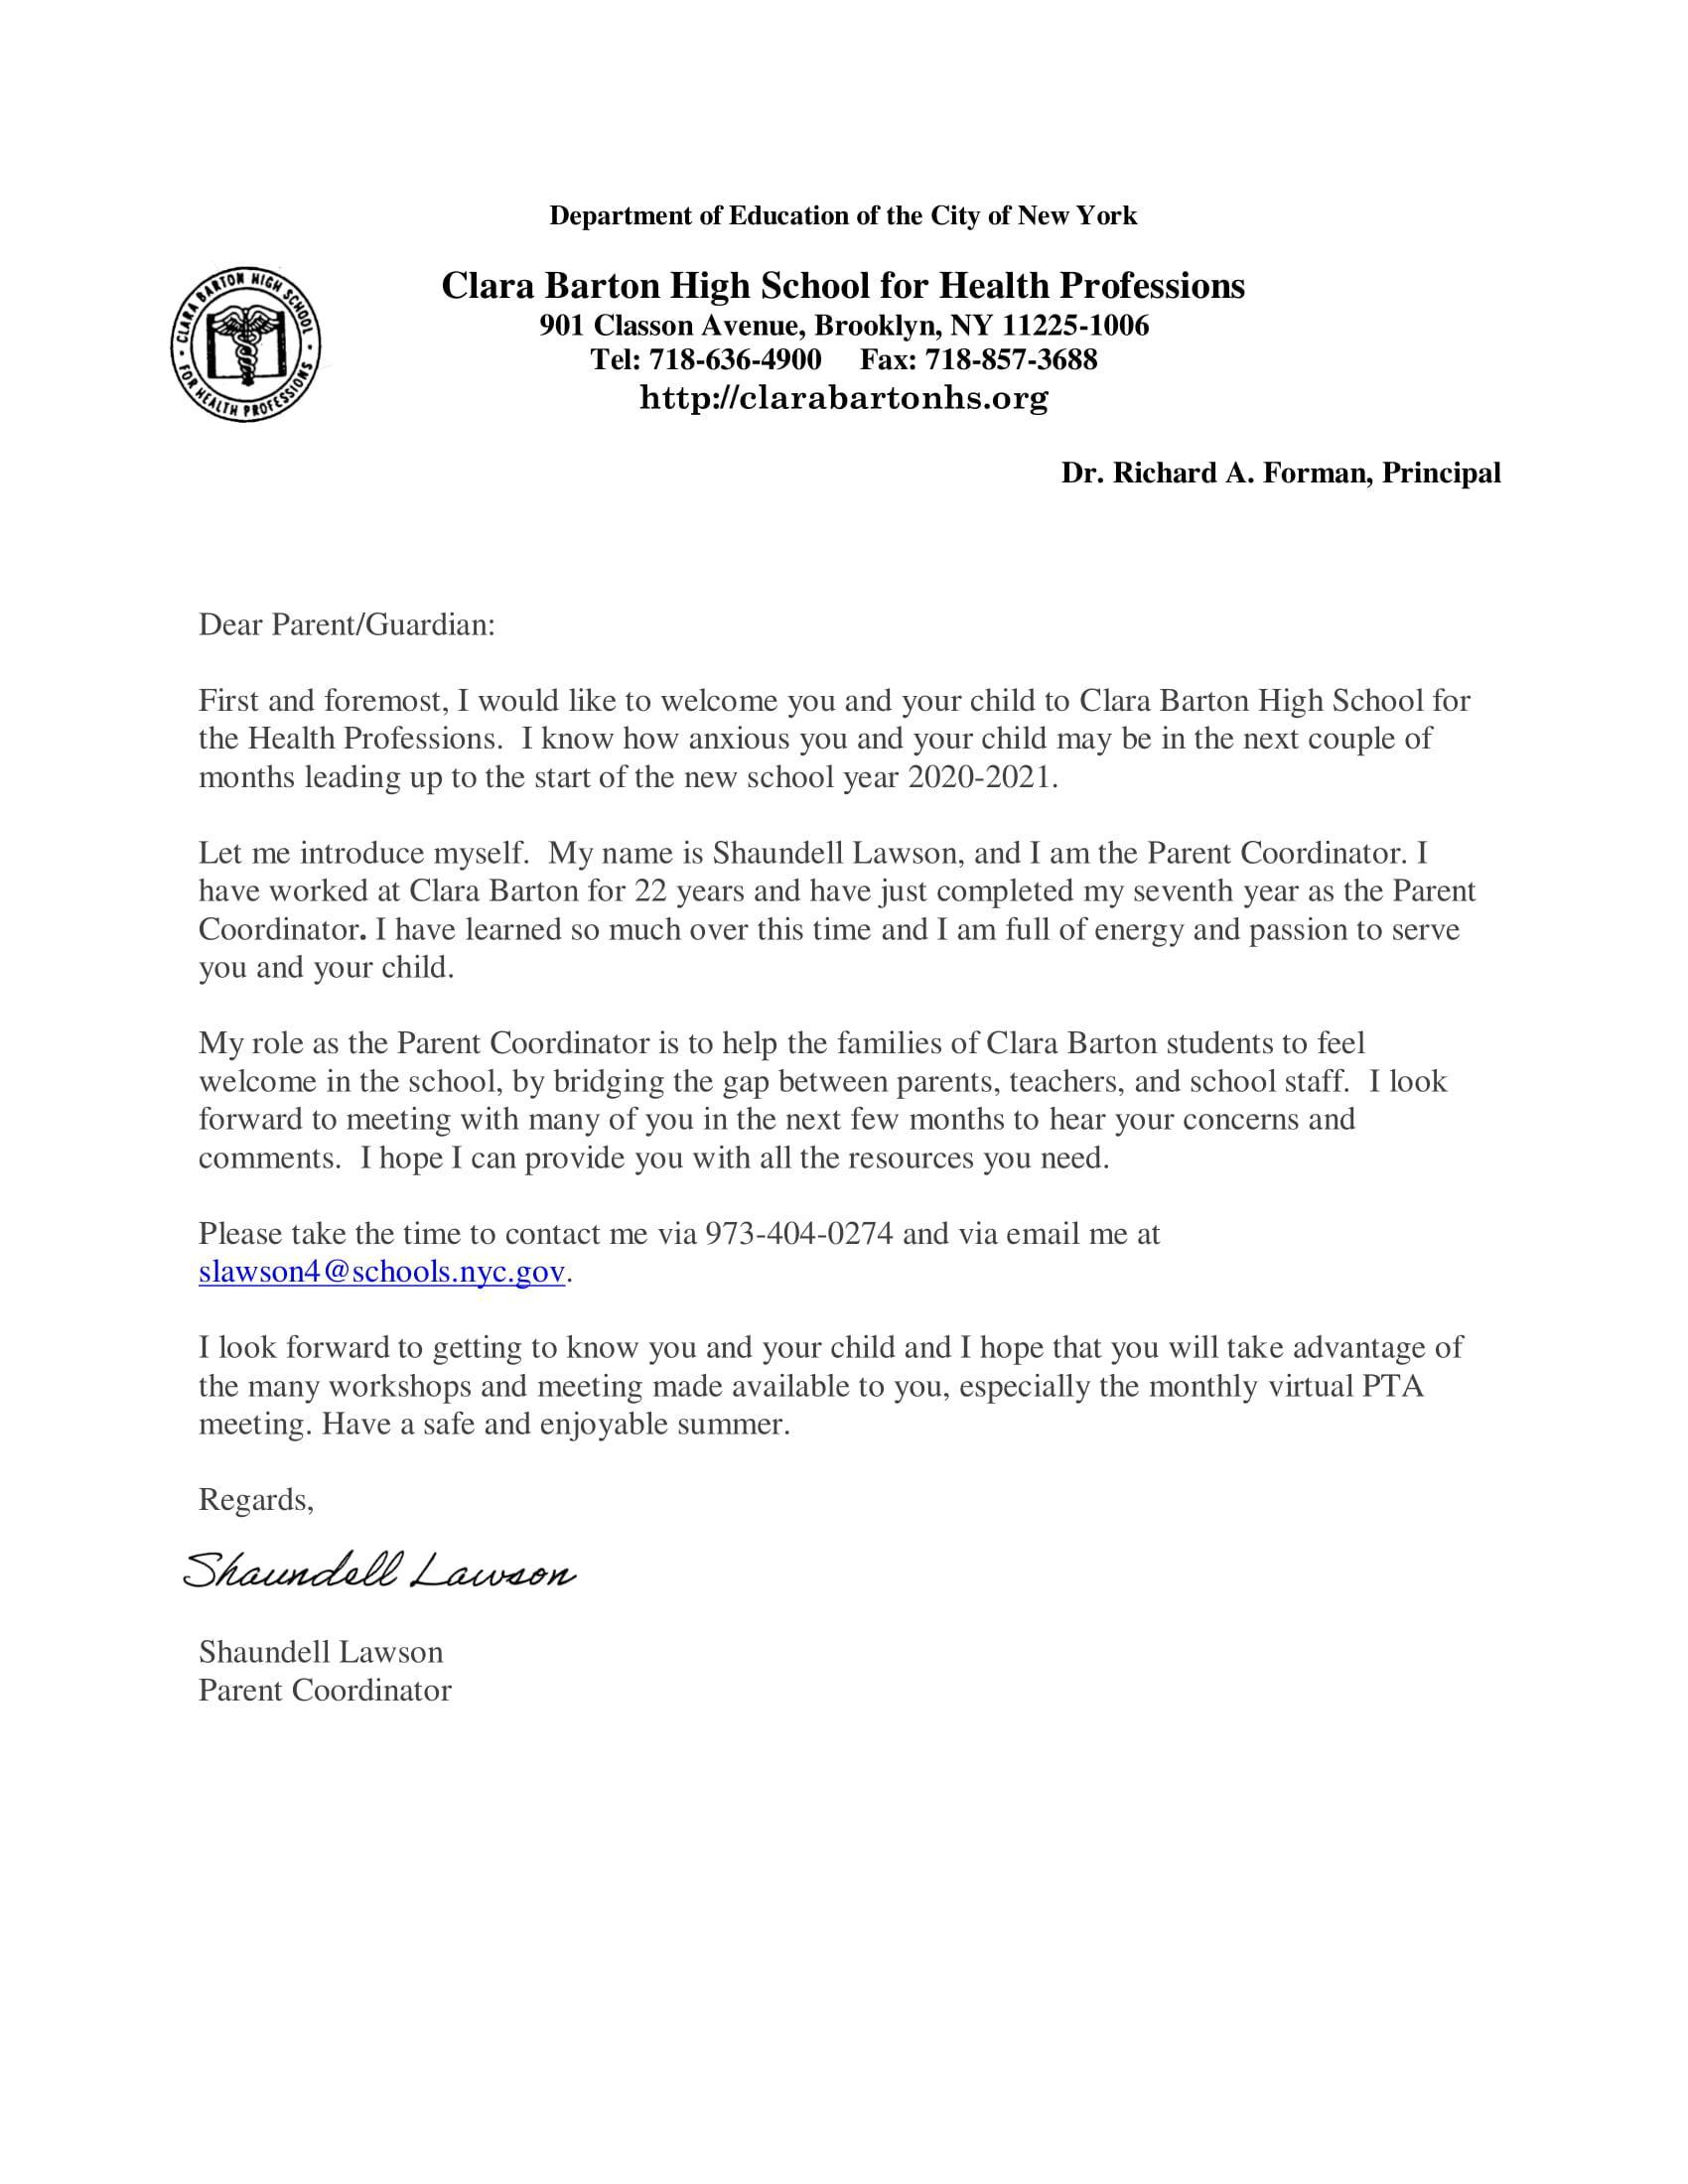 Welcome letter from Ms. Lawson, Parent Coordinator